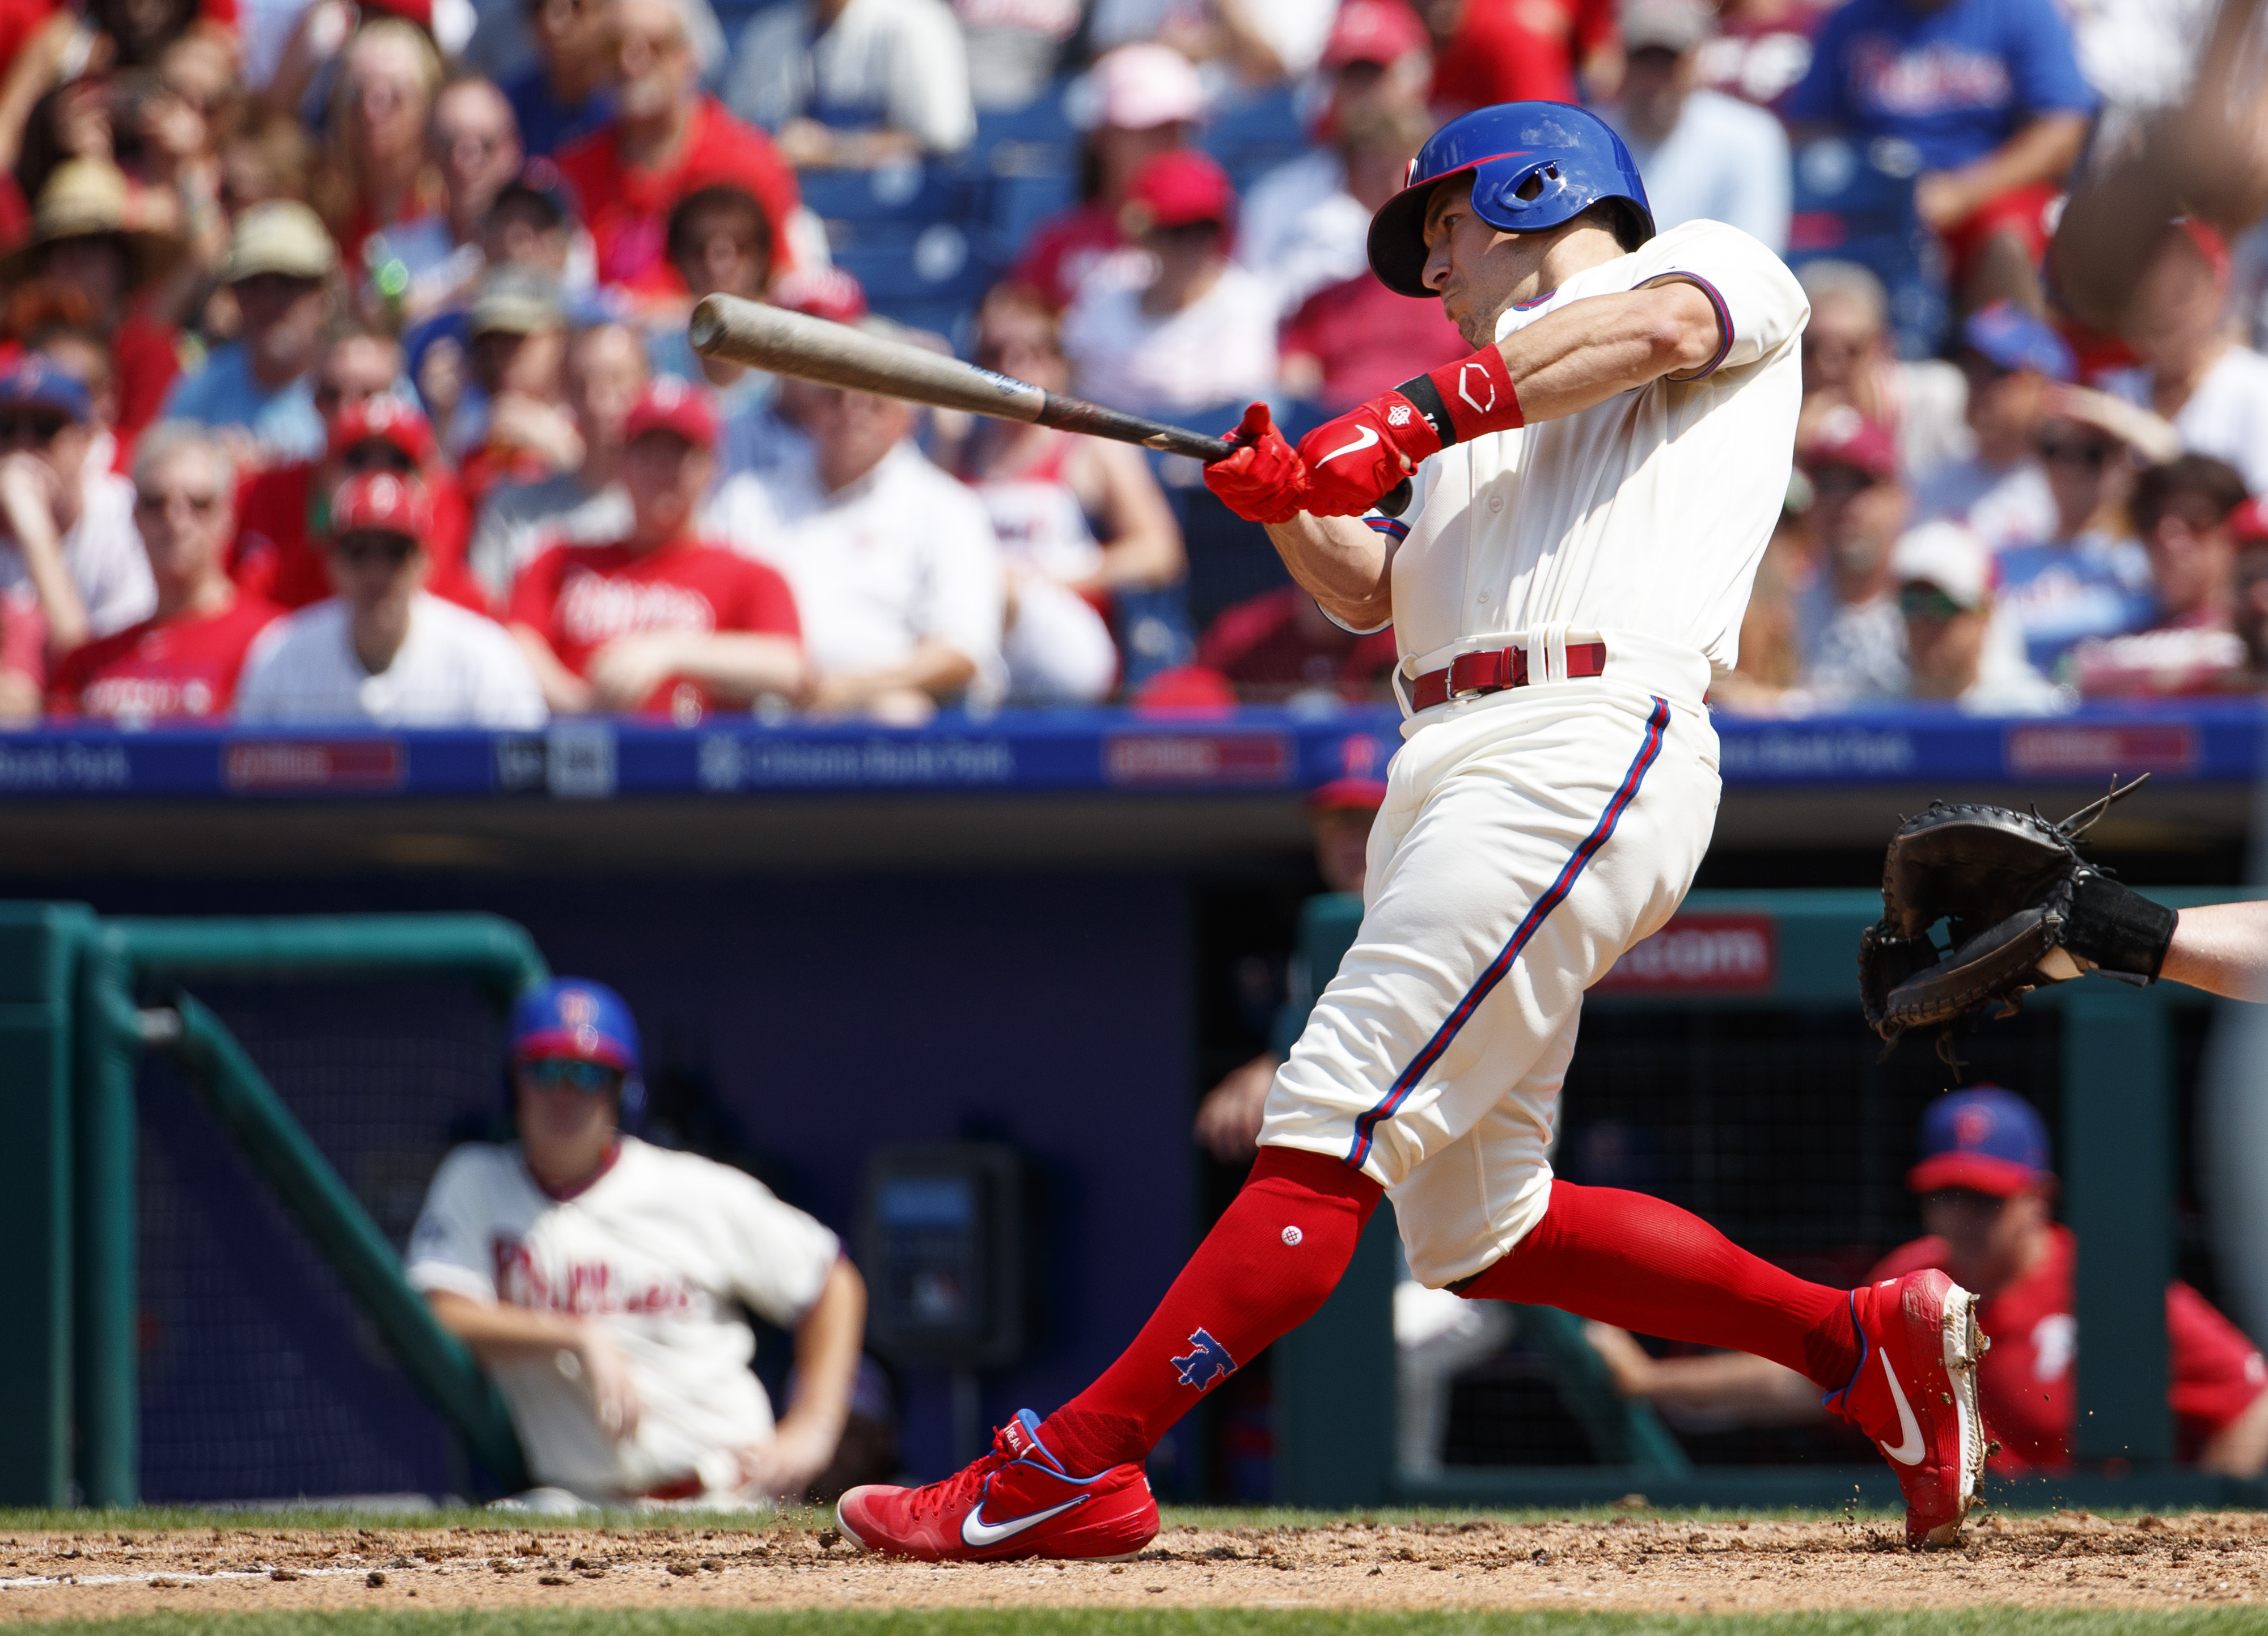 Realmuto's grand slam helps Phillies top Braves, avoid sweep